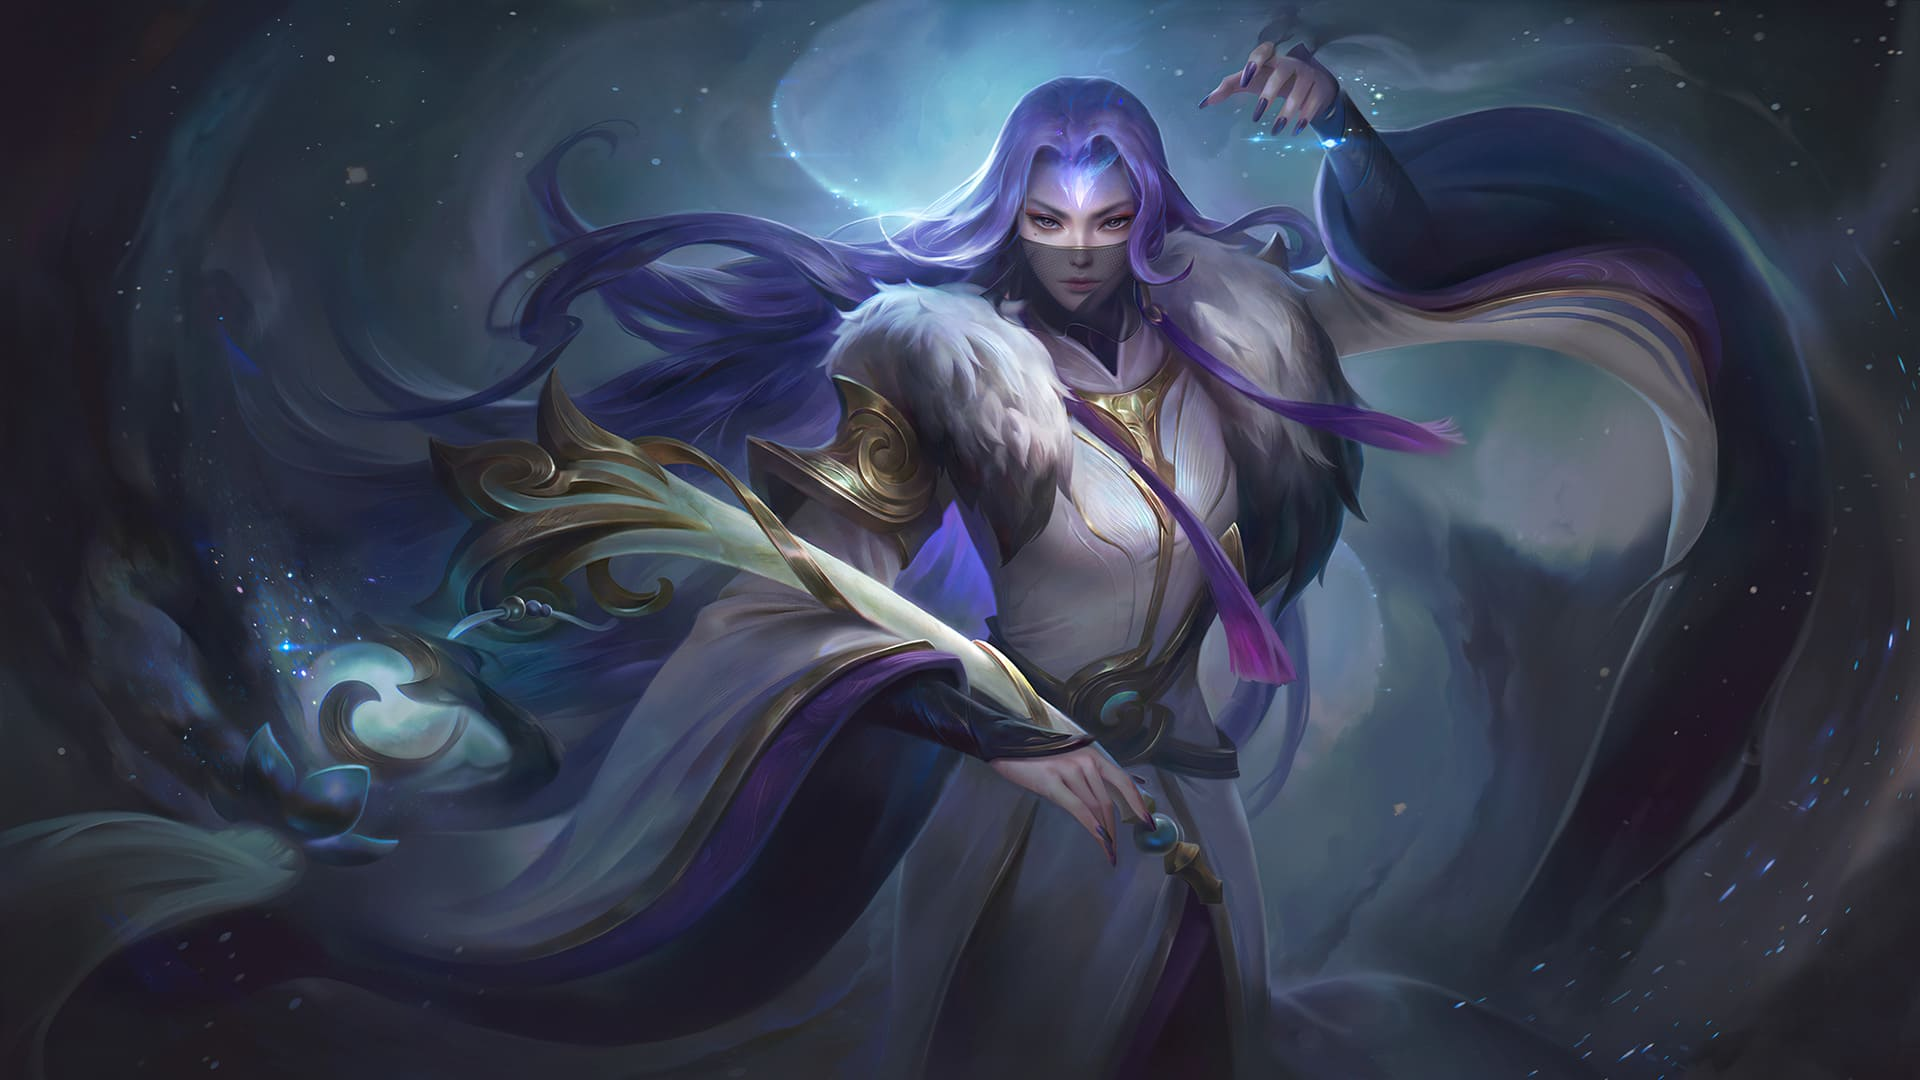 wallpaper luo yi mobile legends hd for PC hobigame